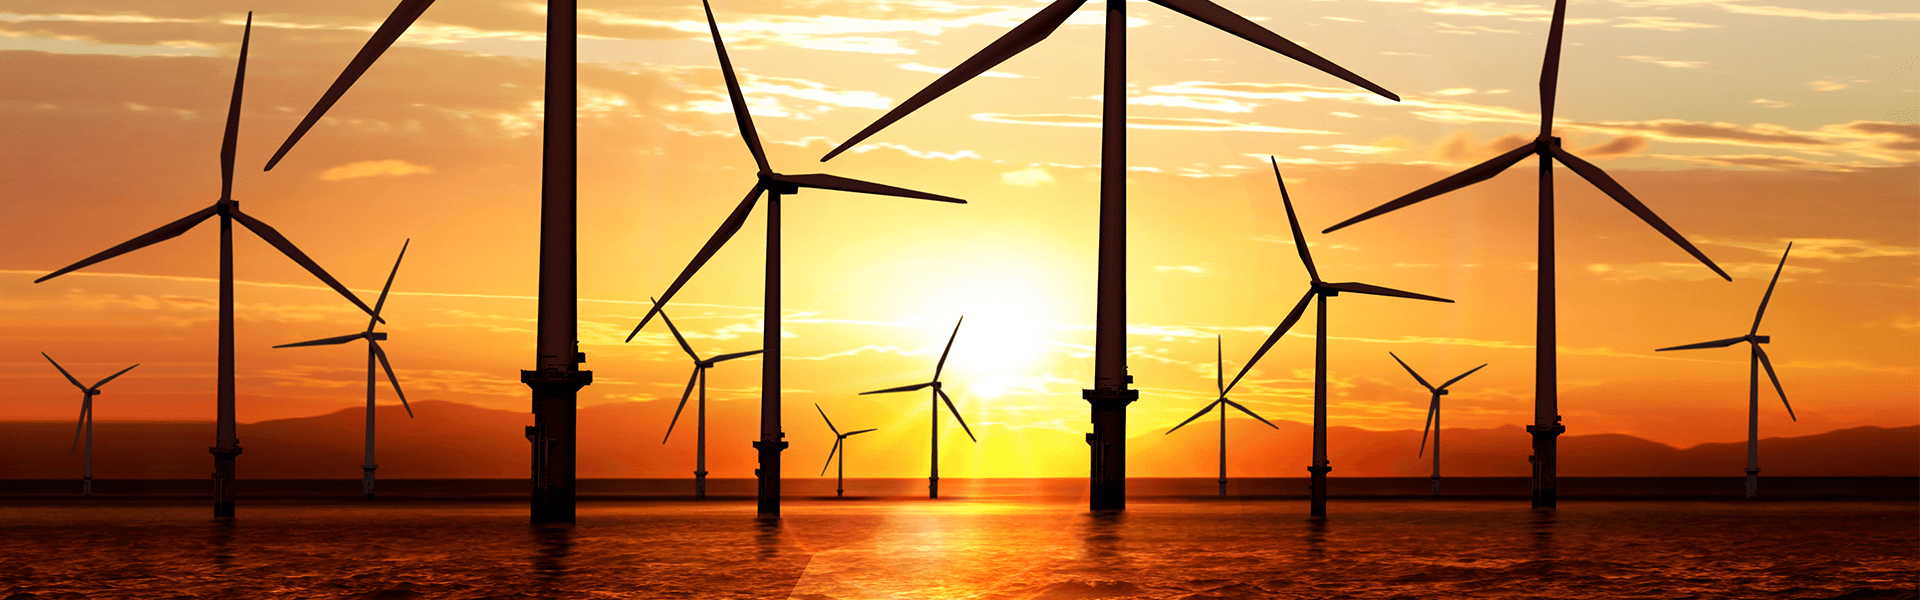 Wind Power Projects Burges Salmon Offshore Farm